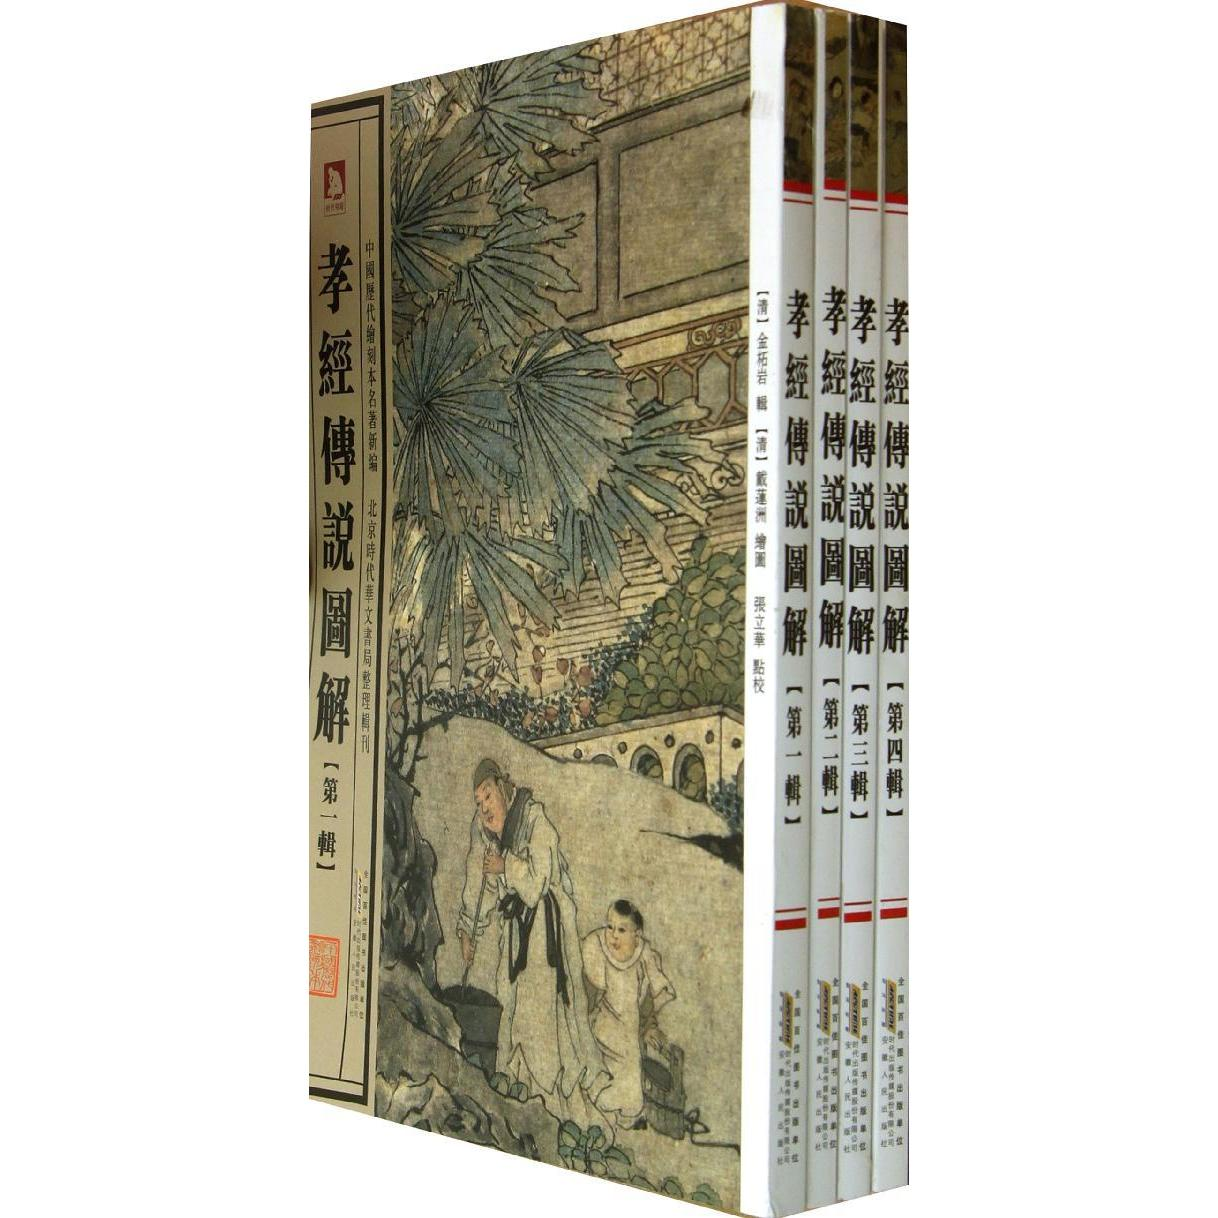 Book of filial piety legend illustrated (total of 4) | | new | dynasty famous ancient chinese painting the world famous xinhua Bookstore genuine selling books chart